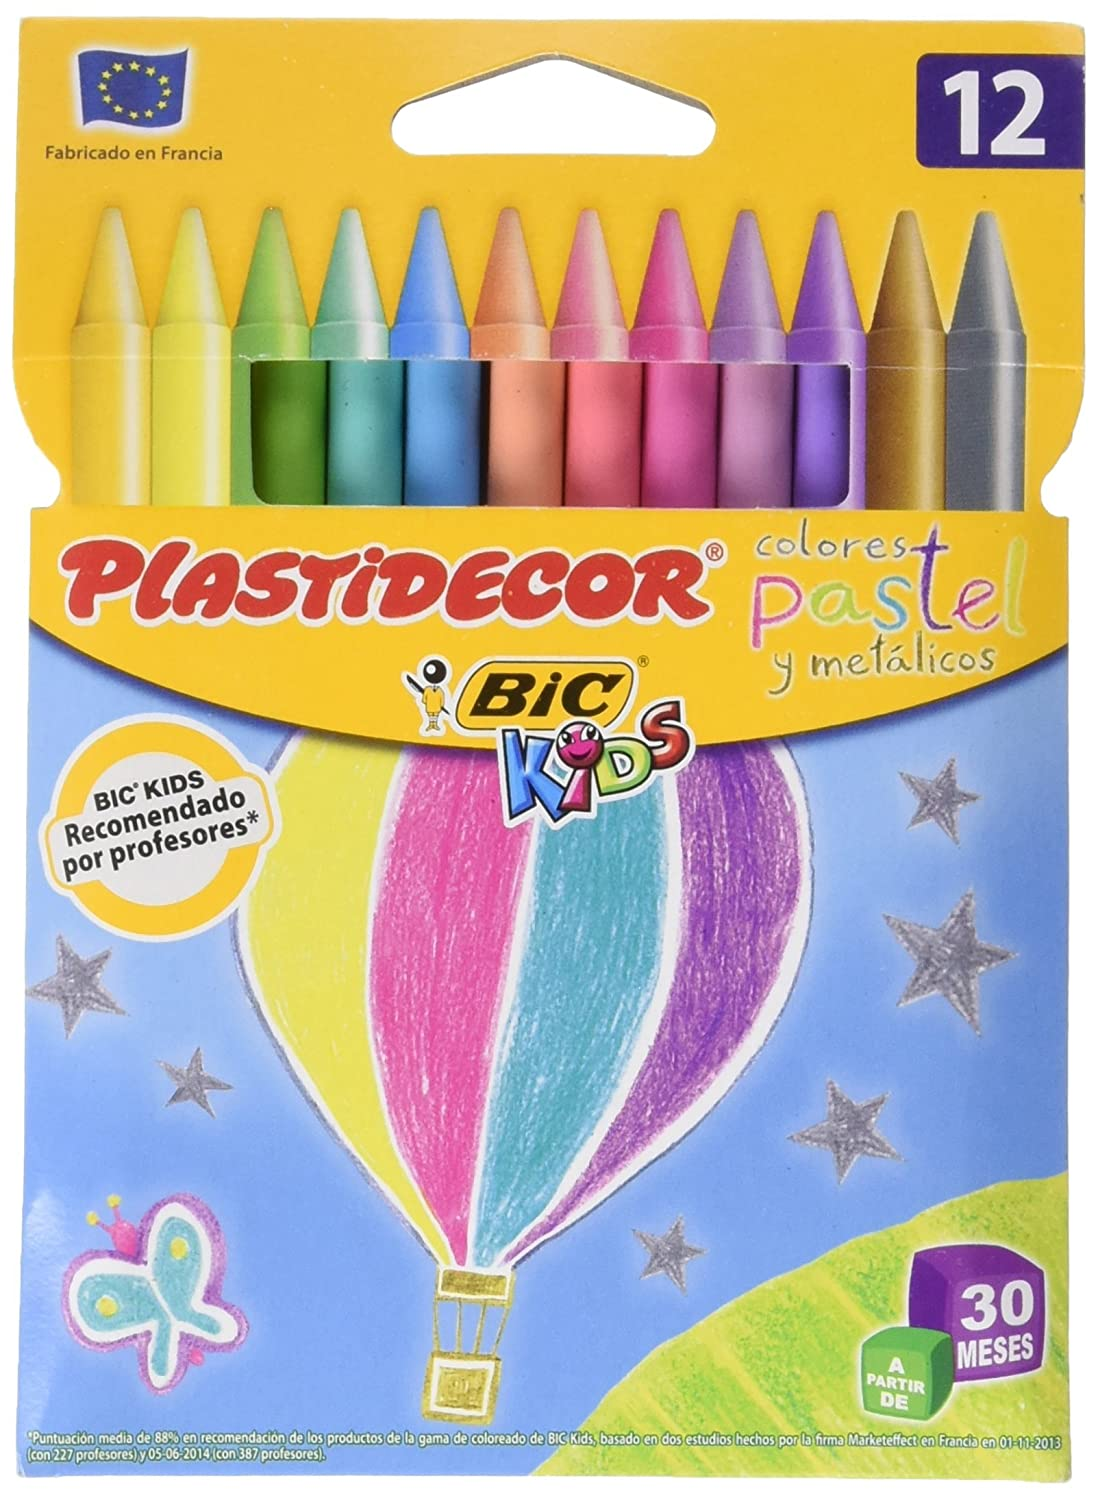 Bic Plastidecor Assorted Colored Crayons (Pack of 24) BIC IBERIA 920301